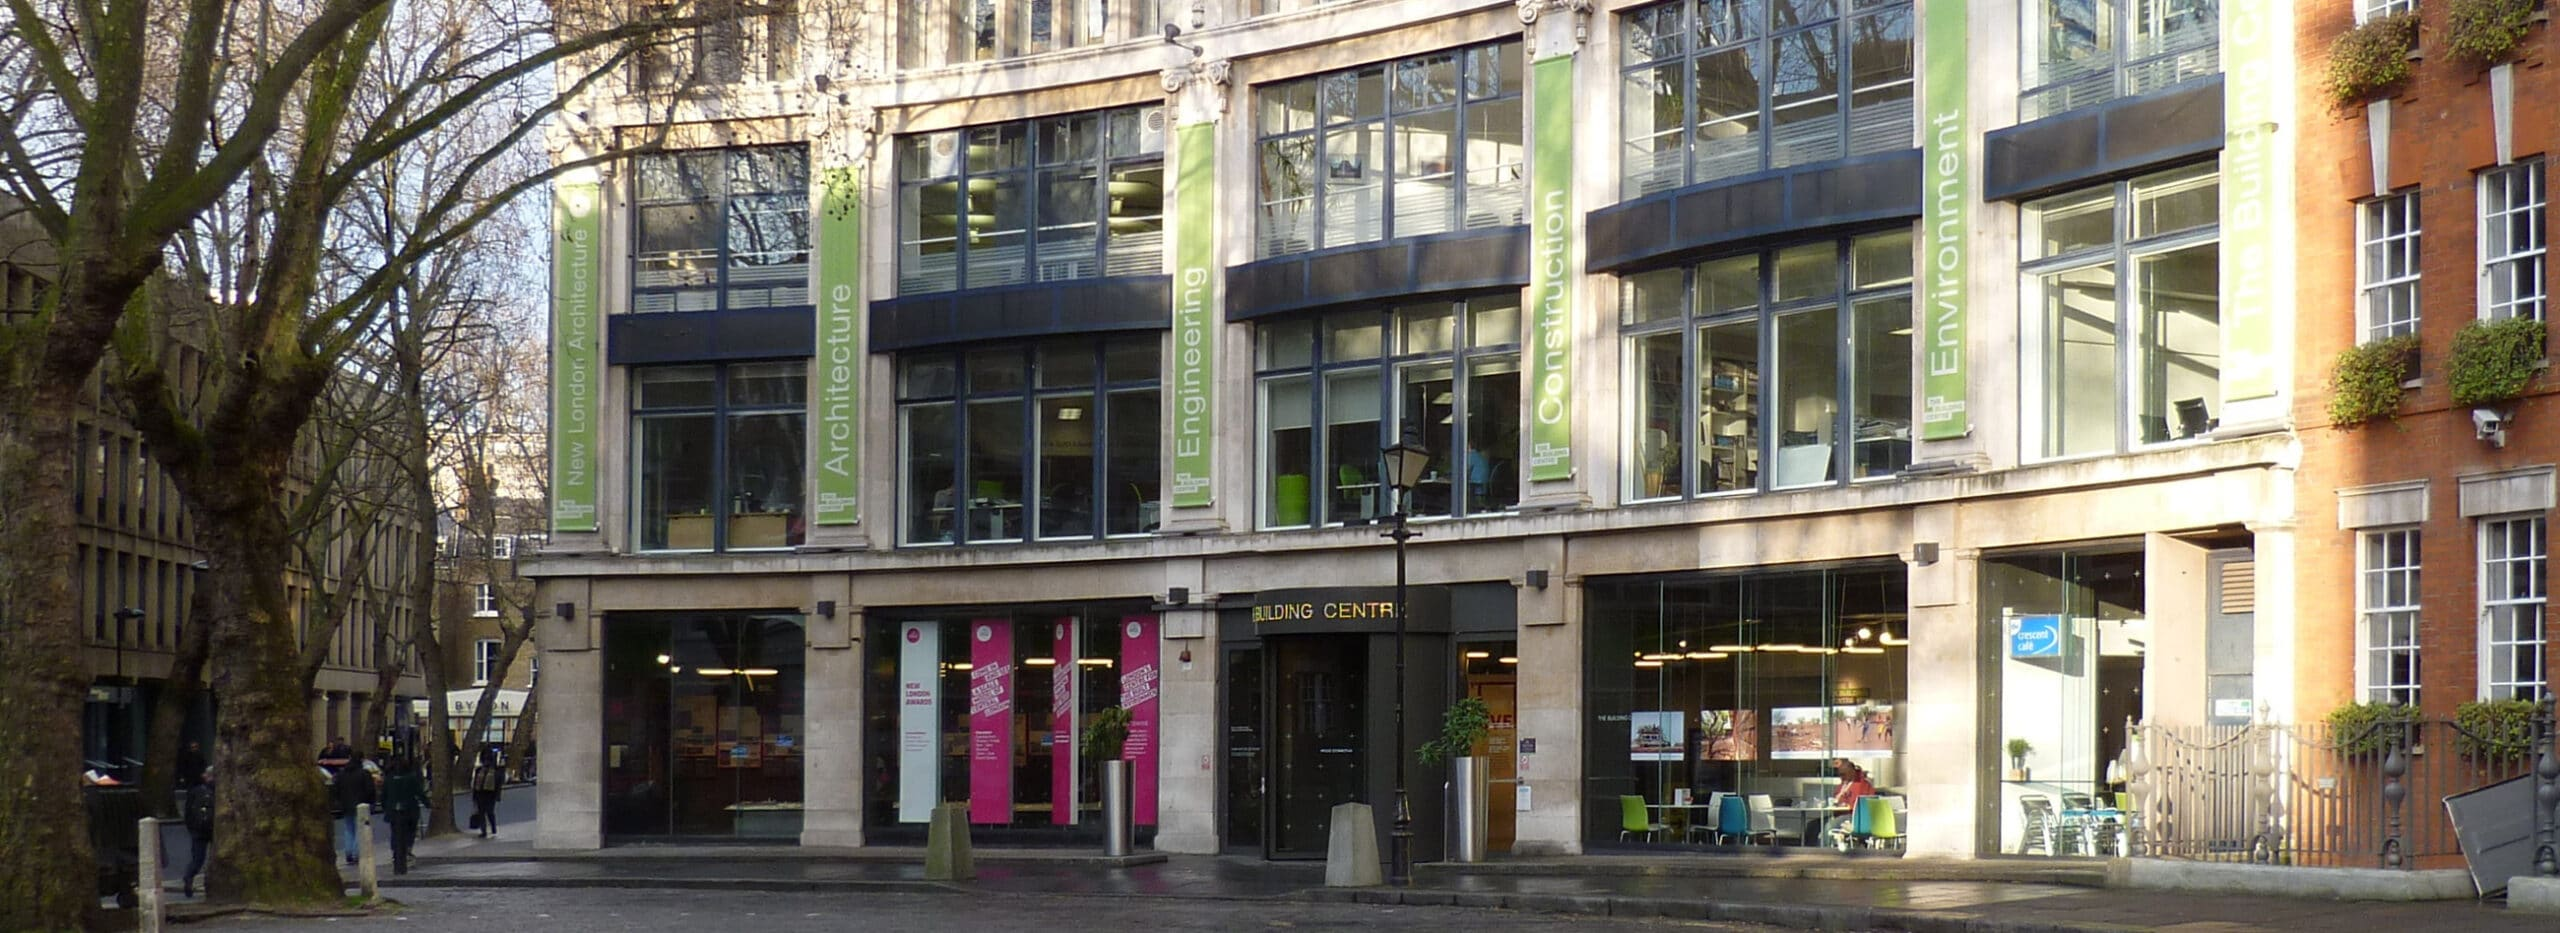 The Building Centre in Central London